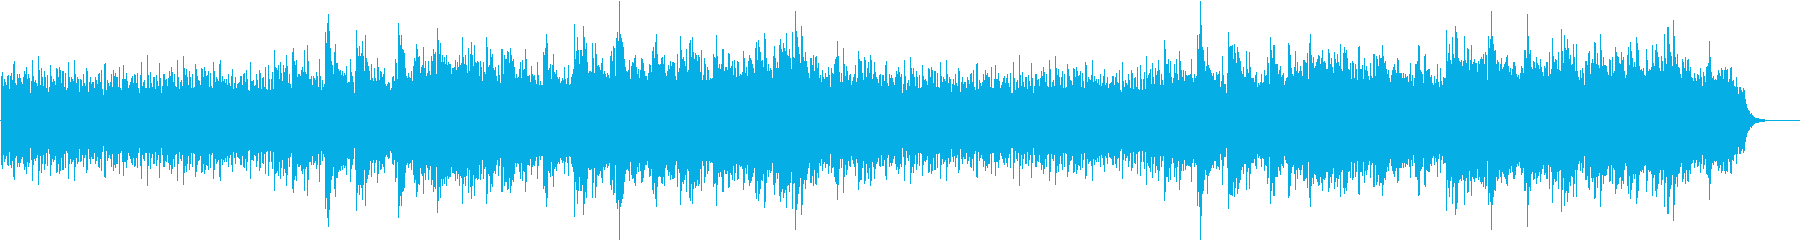 A fantastic song that expresses a quiet and beautiful snow scene's reproduced waveform